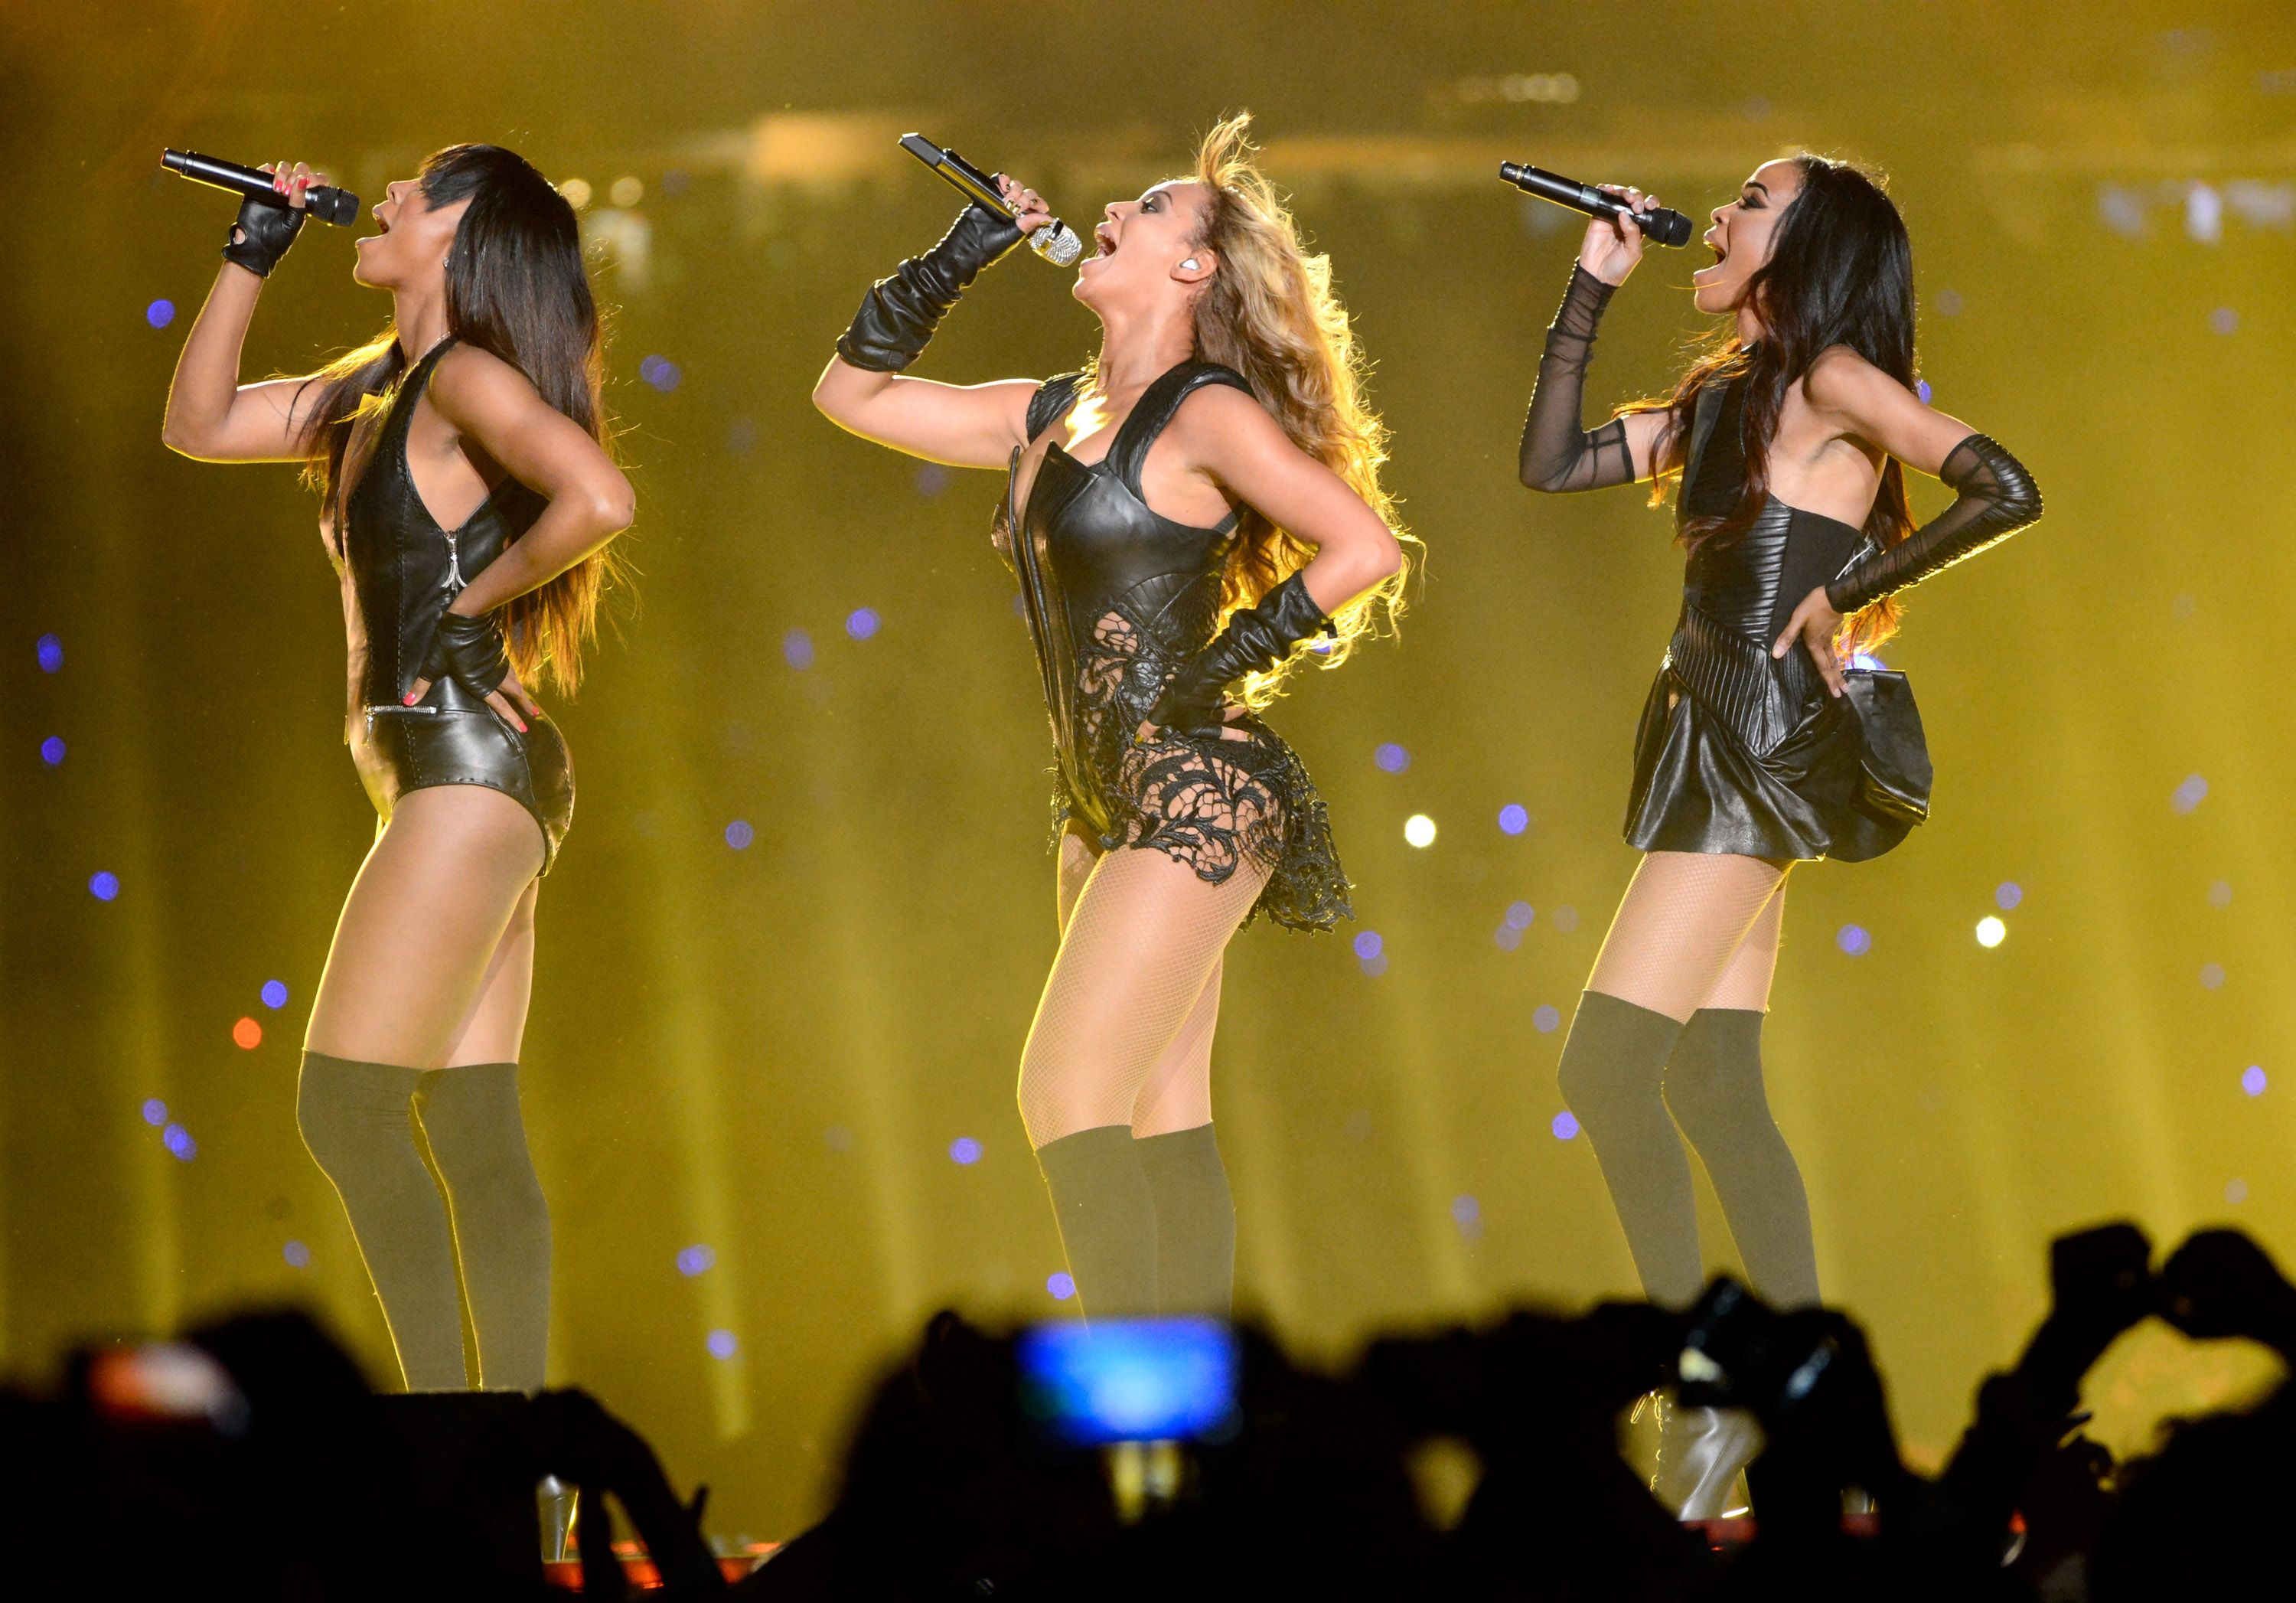 Super Bowl XLVII: Bey Brings Down the House (2013)